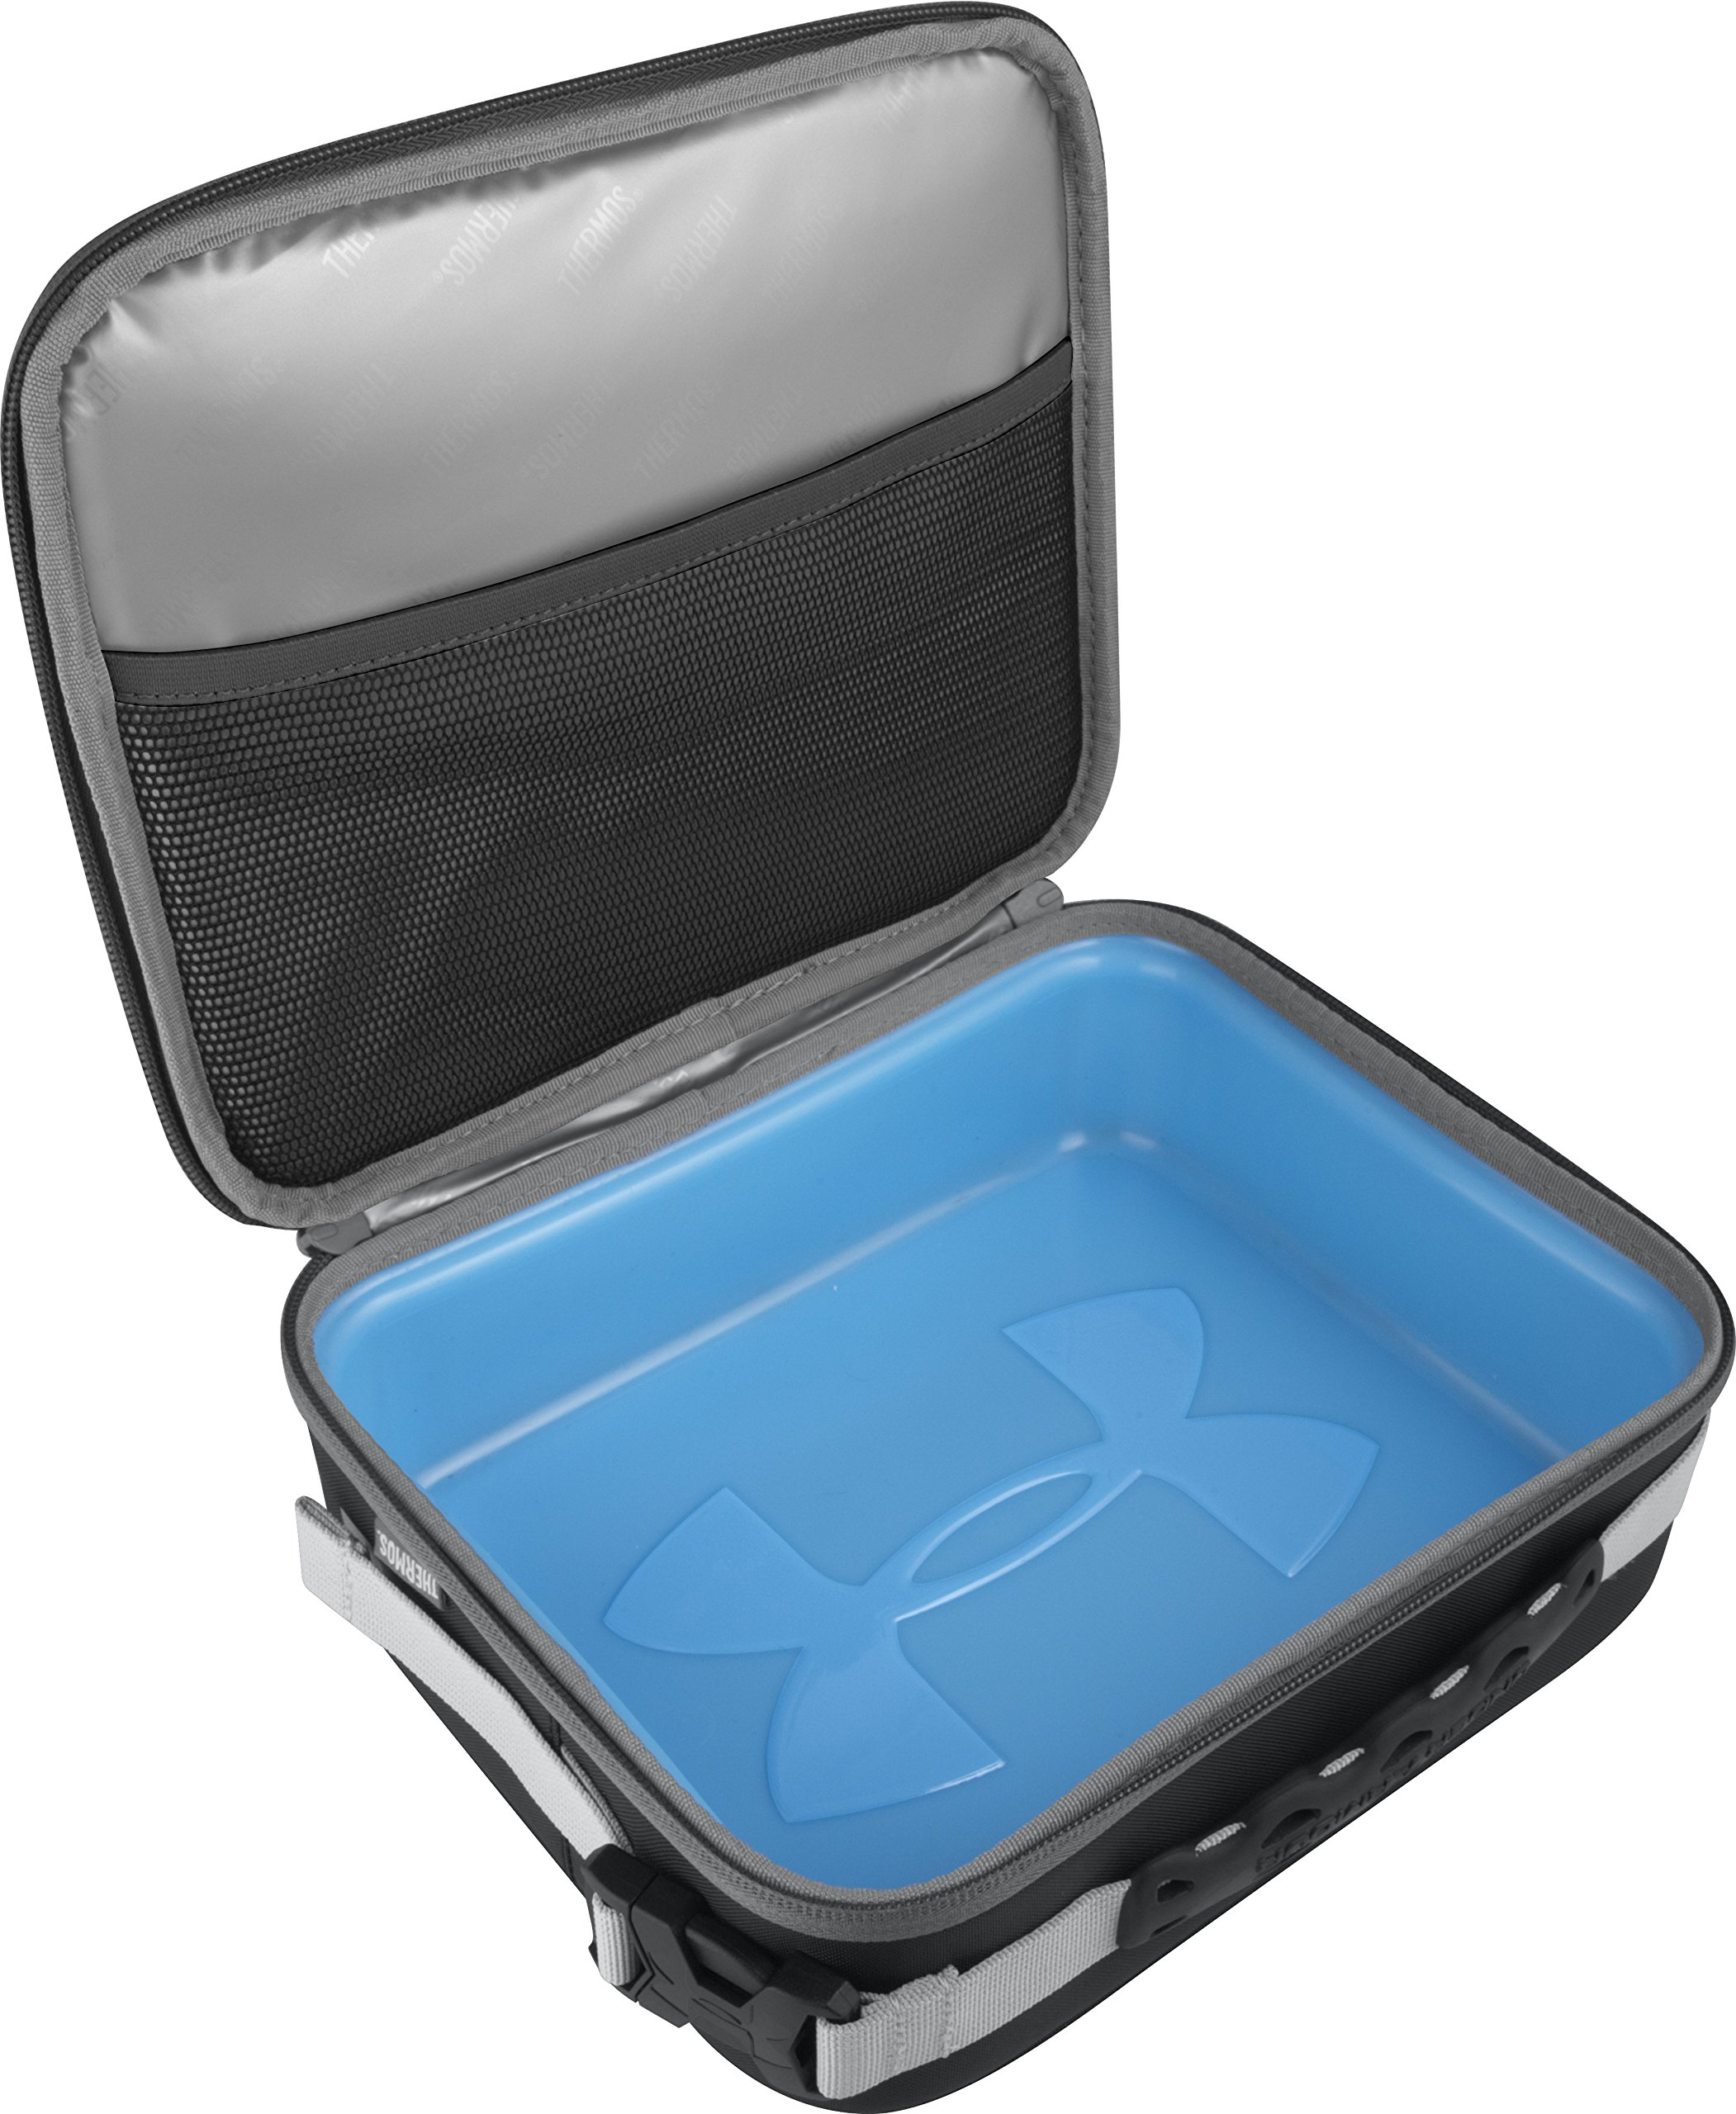 Under Armour Lunch Box, Graphite by Thermos